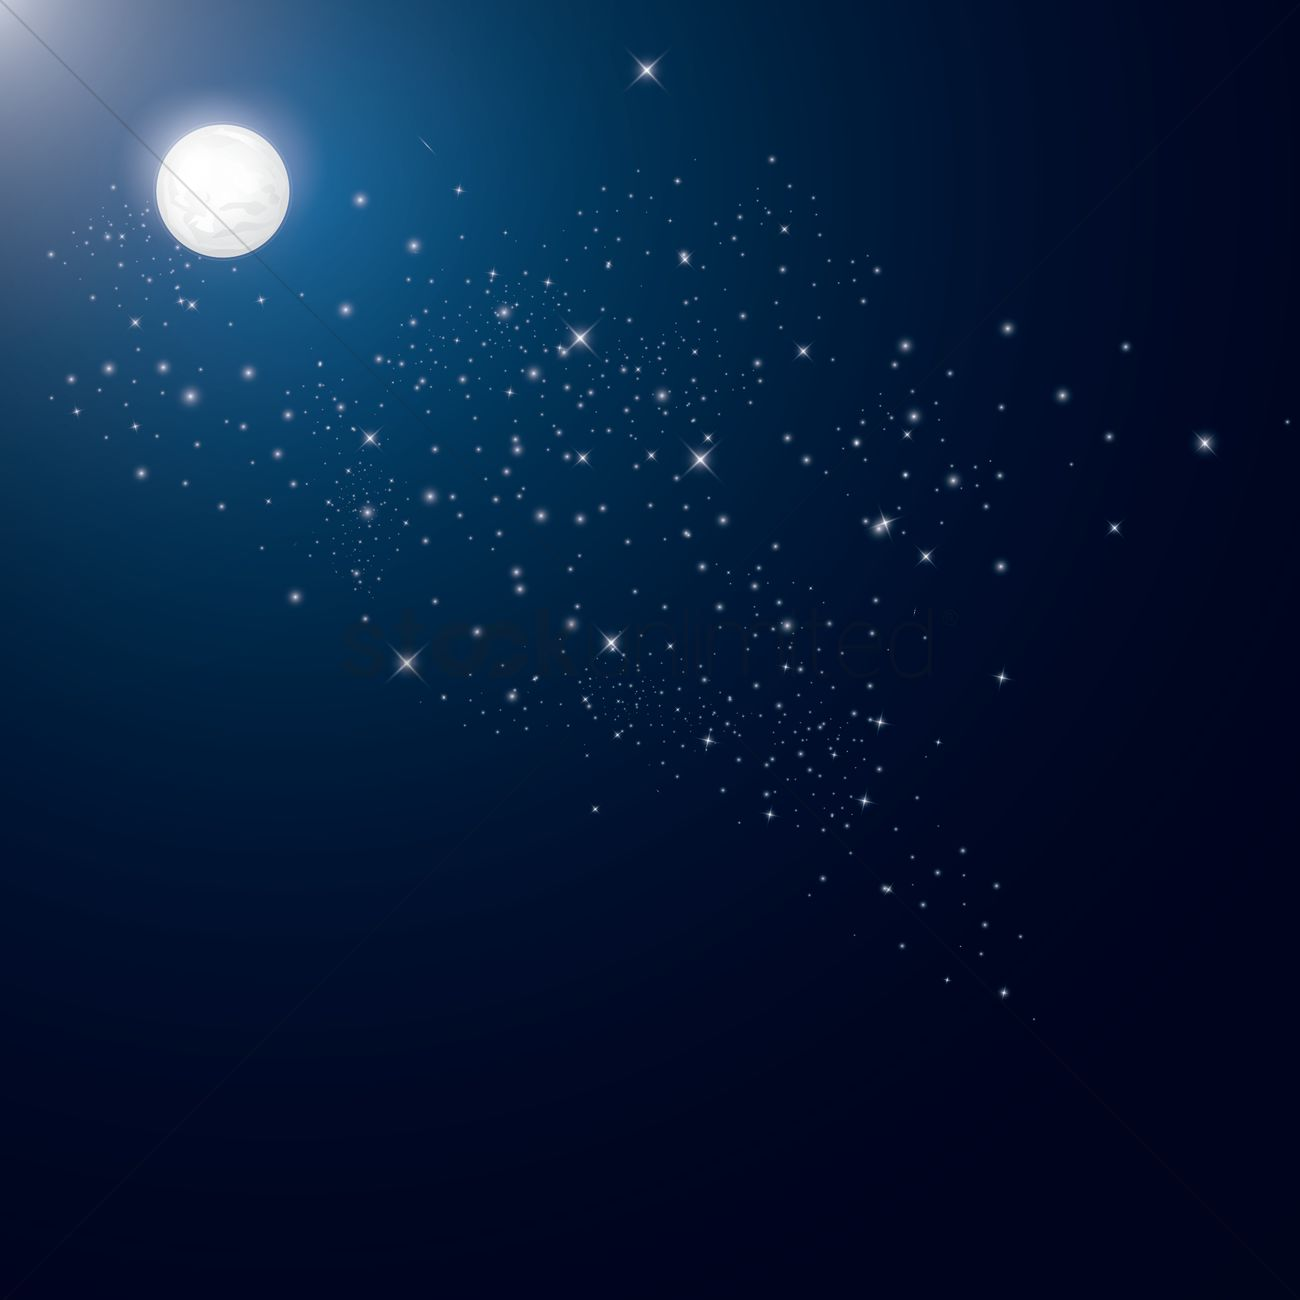 Full moon and stars background Vector Image   1519164 StockUnlimited 1300x1300